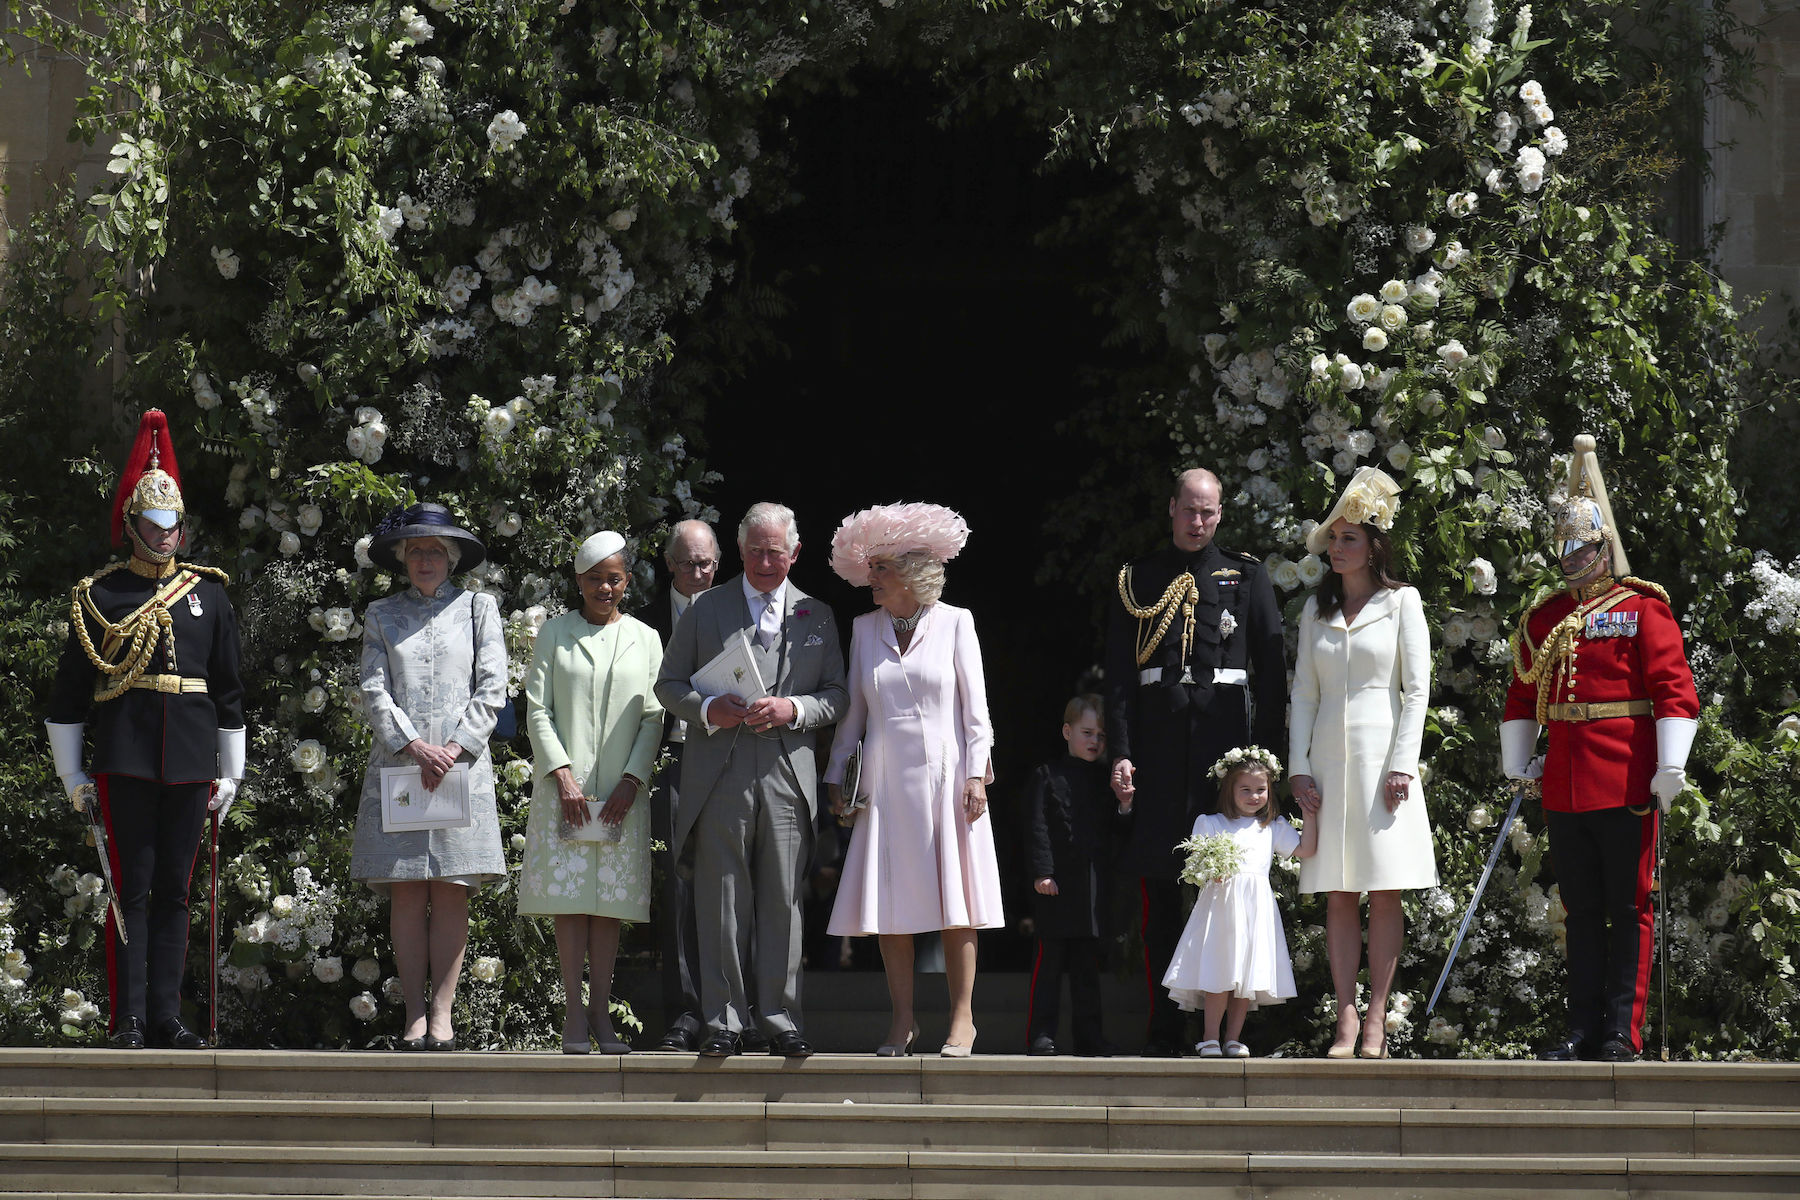 <div class='meta'><div class='origin-logo' data-origin='Creative Content'></div><span class='caption-text' data-credit='Jane Barlow/PA Wire'>Doria Ragland, the Prince of Wales, the Duchess of Cornwall, the Duke and Duchess of Cambridge with Prince George and Princess Charlotte leave St George's Chapel.</span></div>